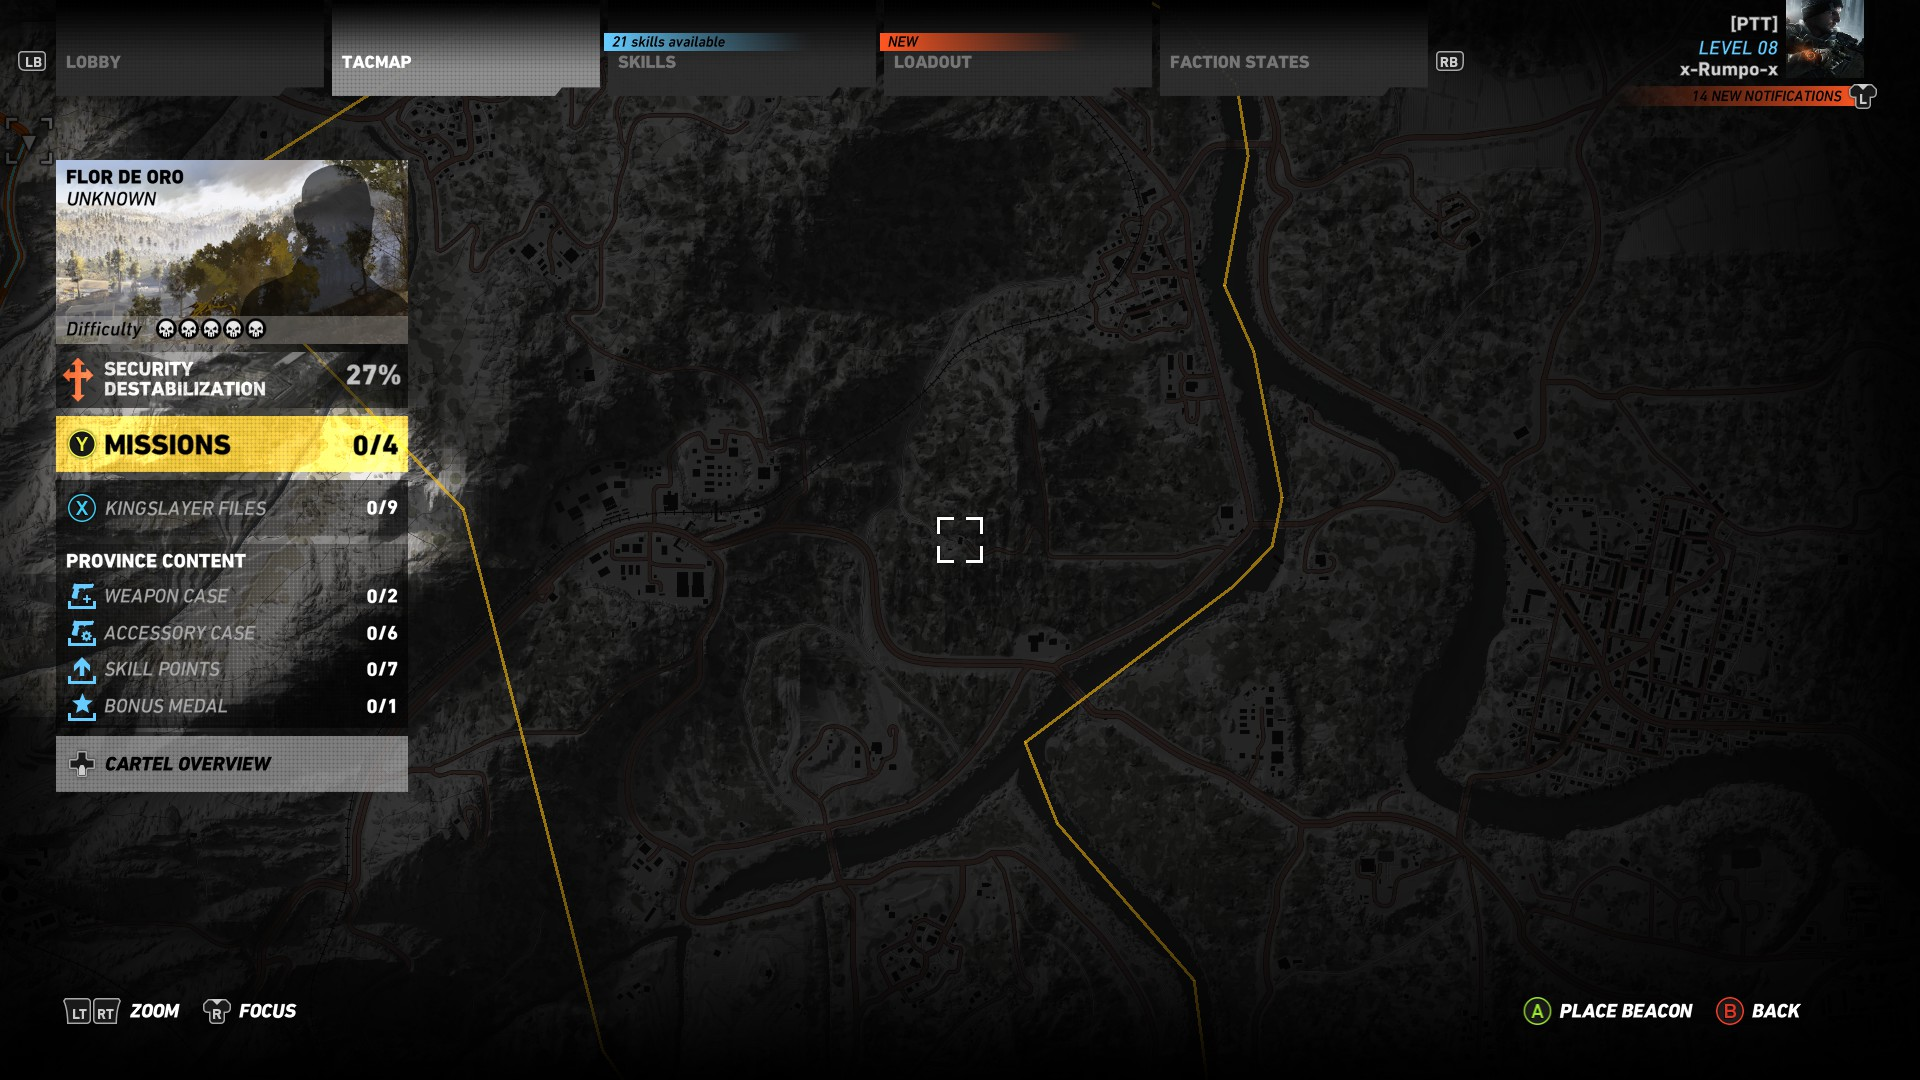 This is the location of the M4A1 in Ghost Recon Wildlands